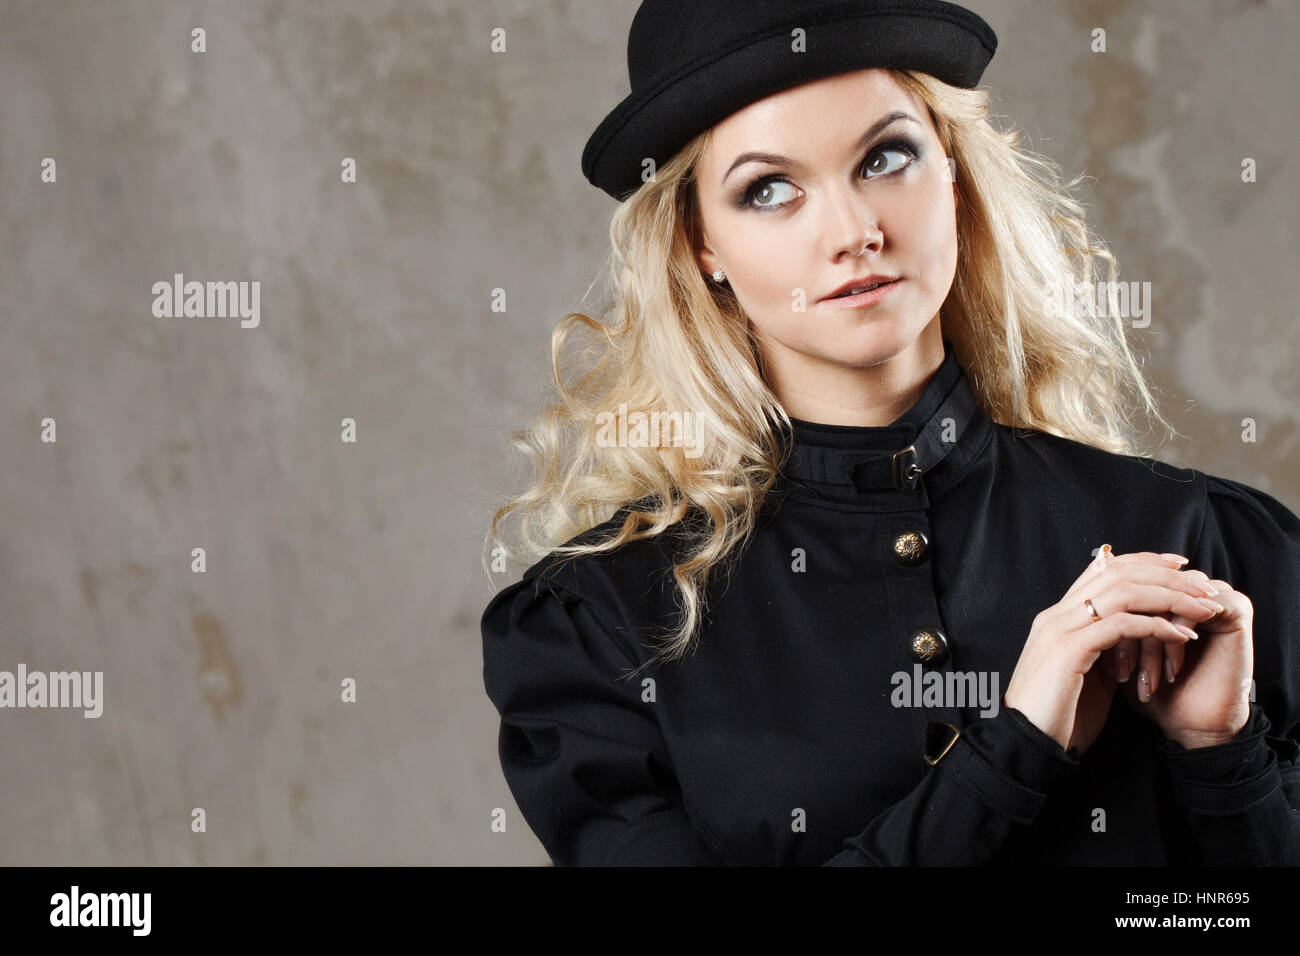 Portrait of a beautiful steampunk woman hat-bowler hat over grunge  background. 62b96e1ba60d